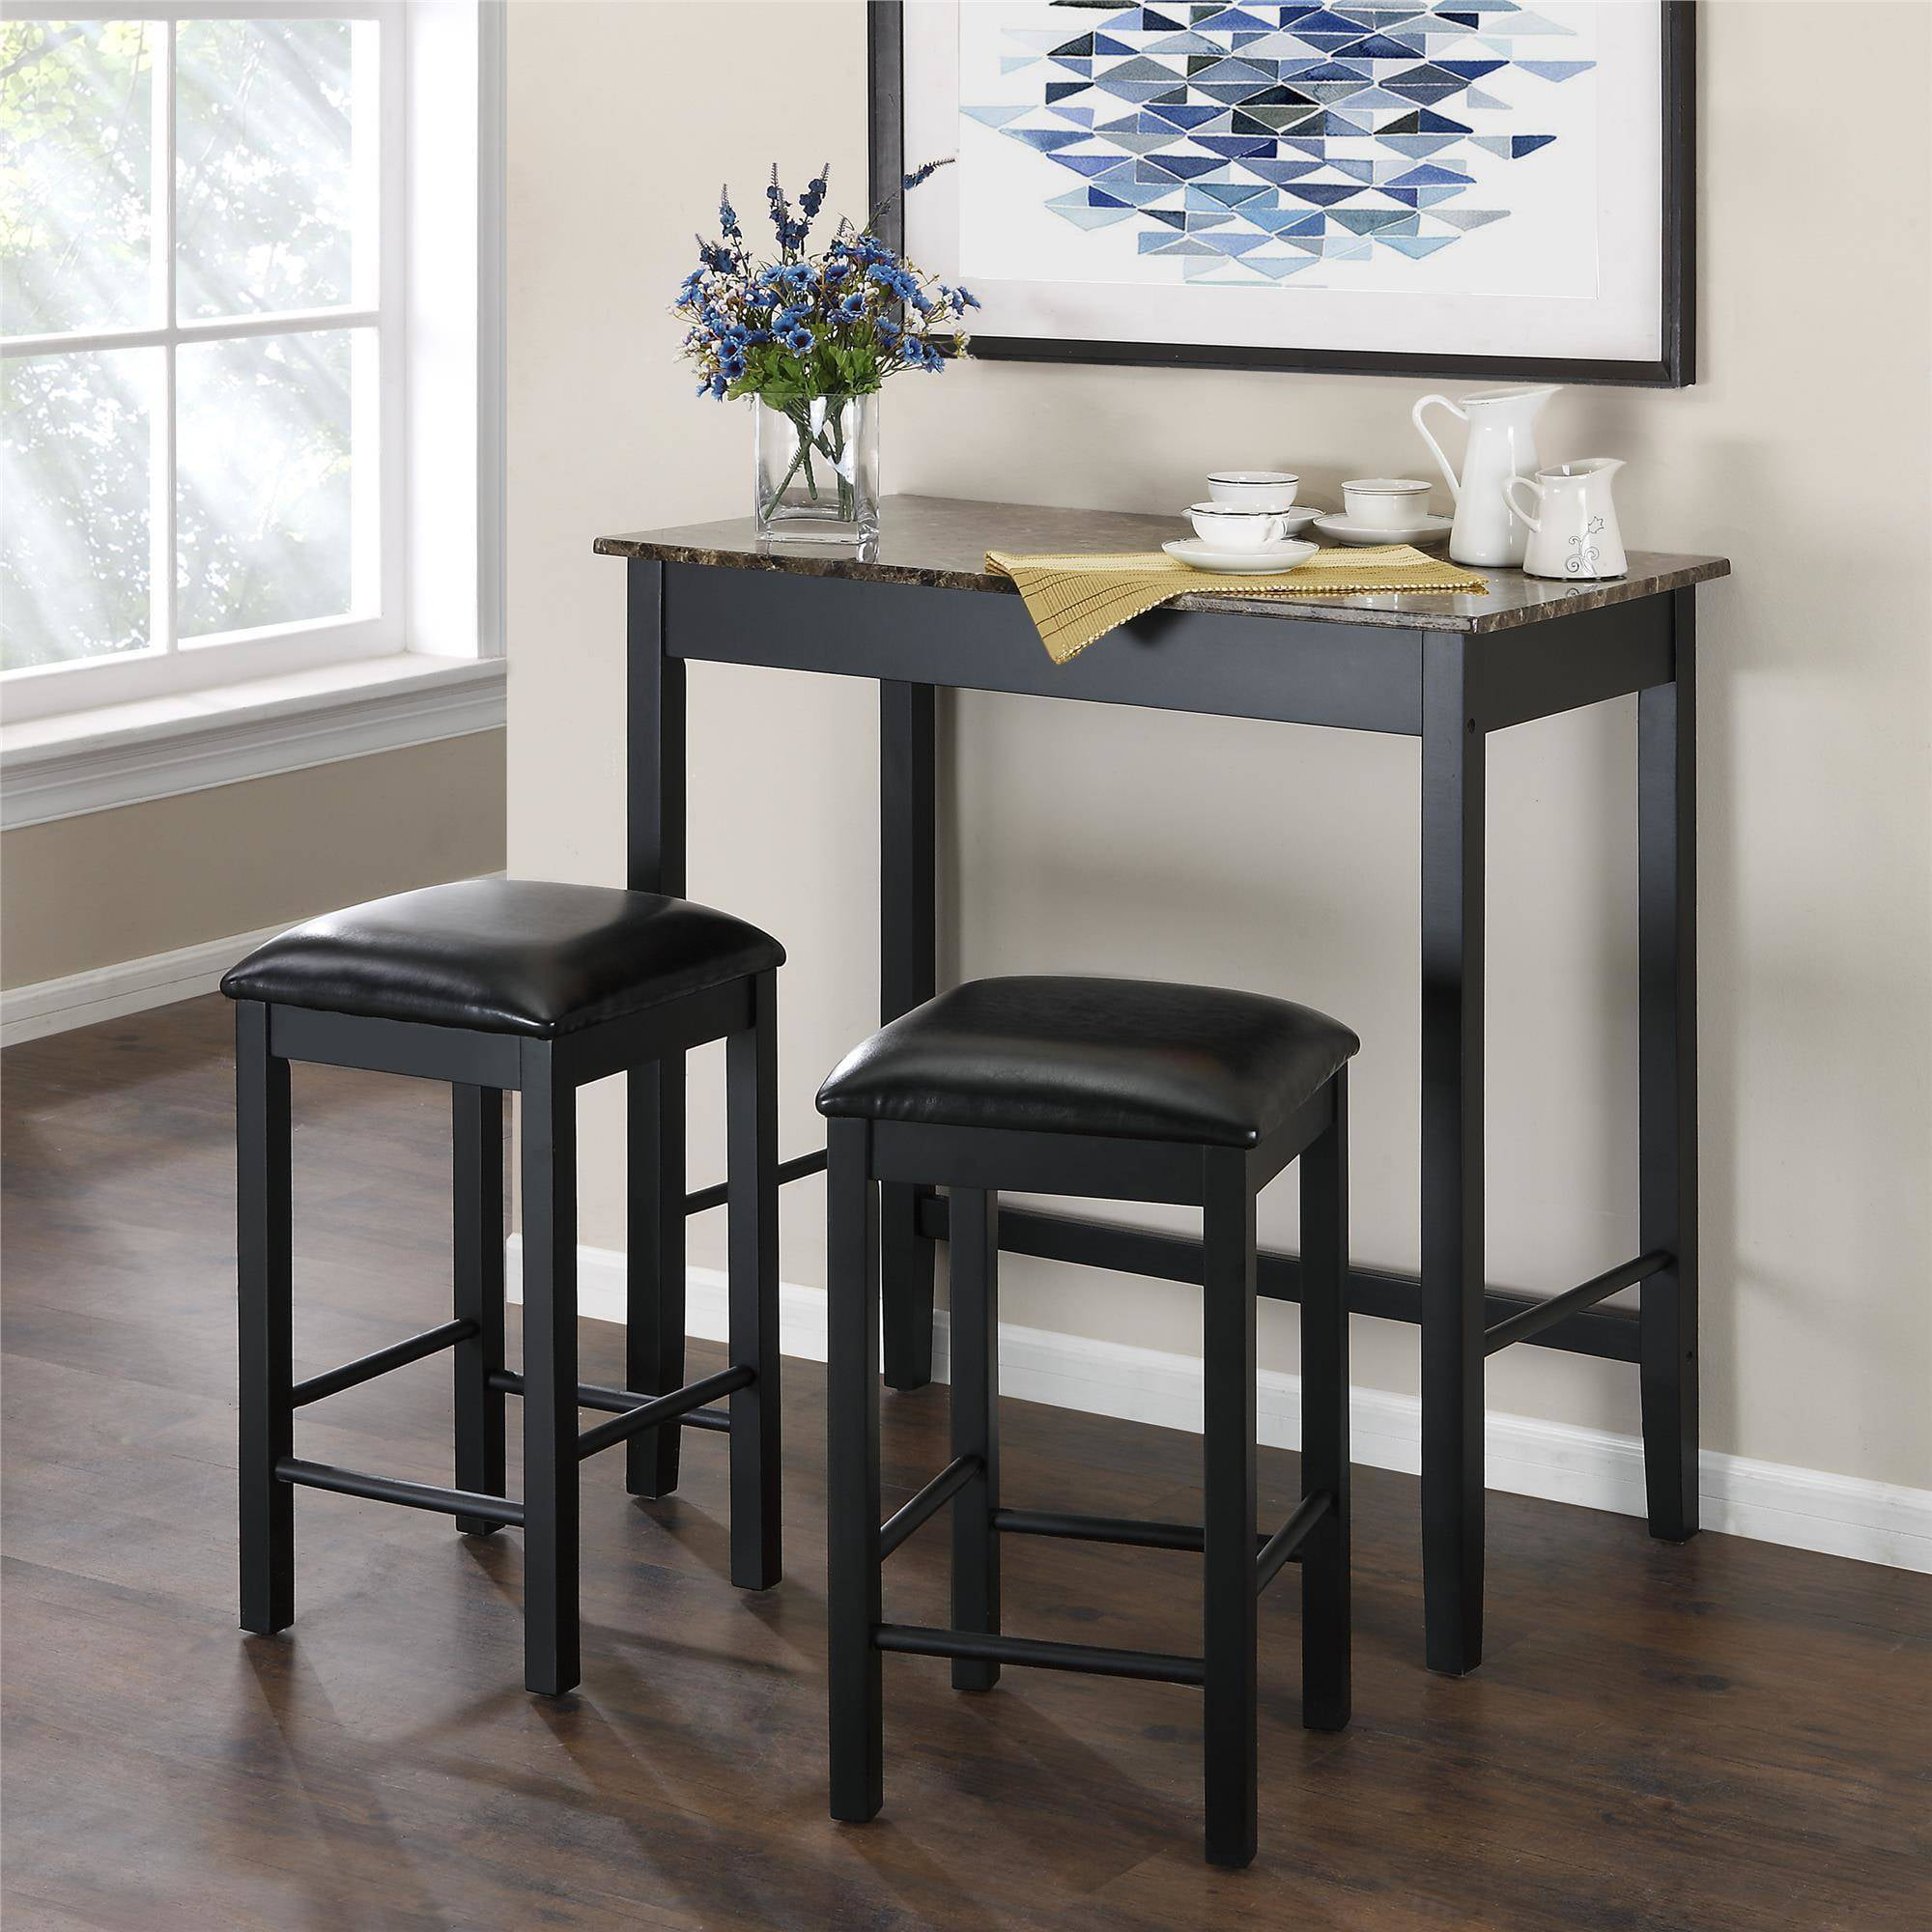 Dining Room Table Set Inspiration Kitchen & Dining Furniture  Walmart Review